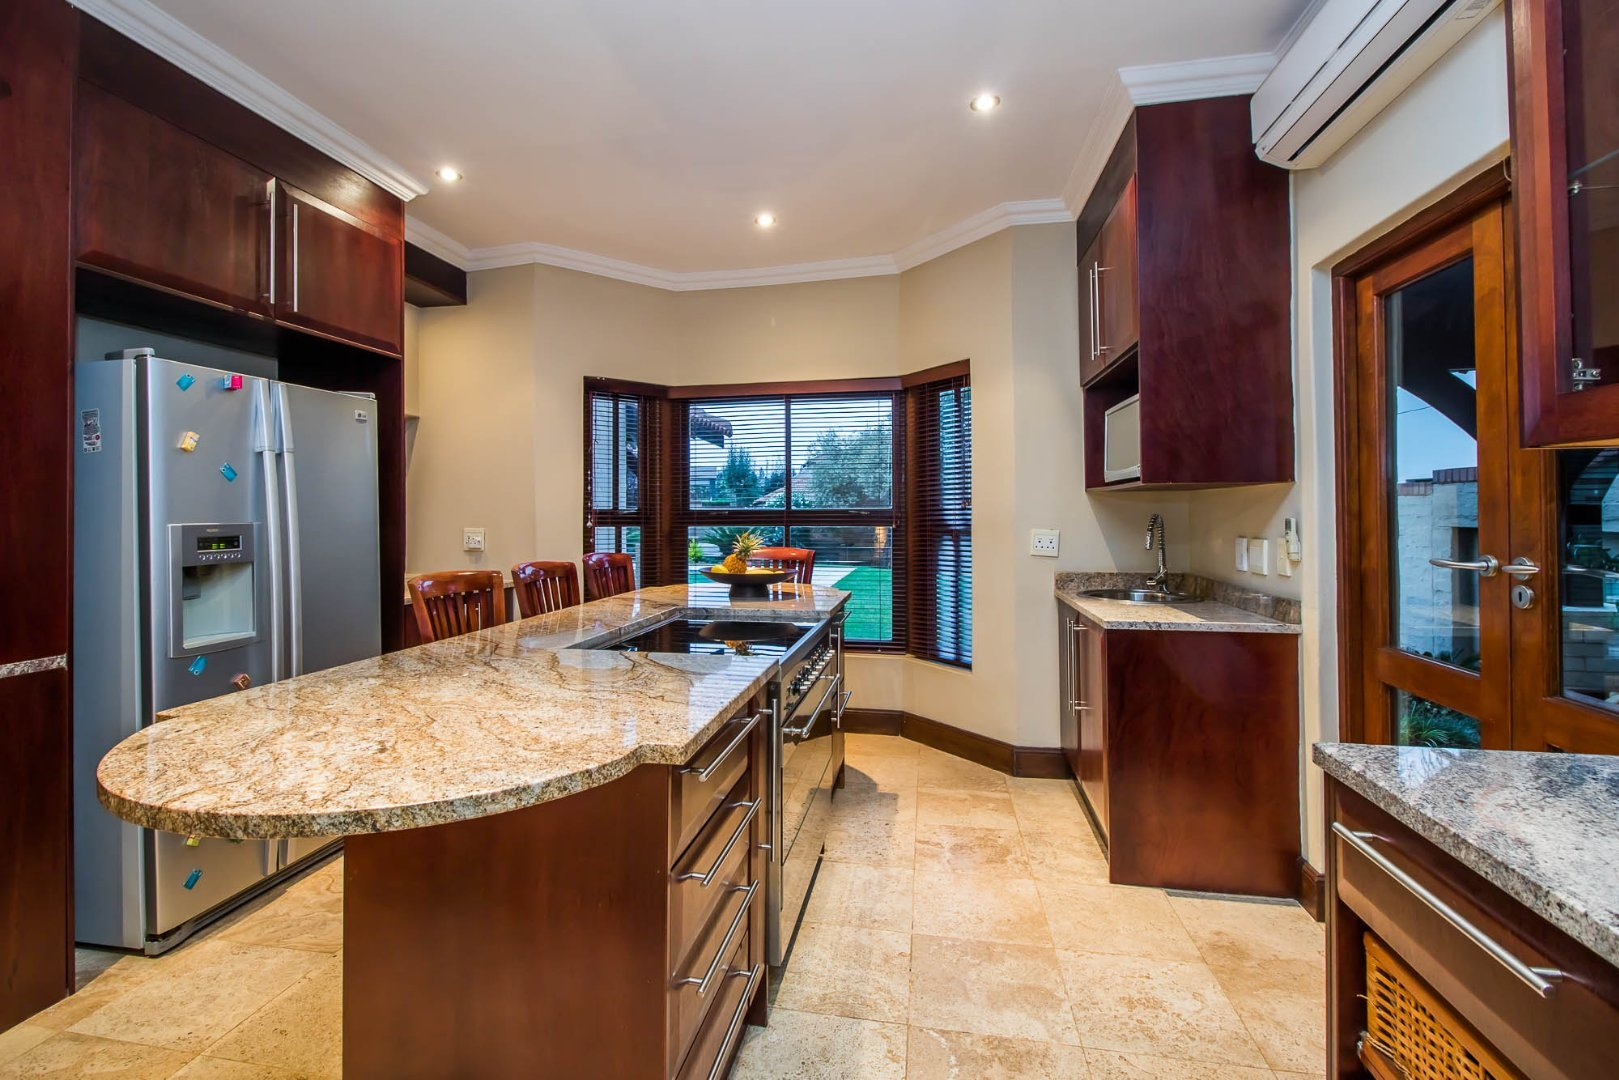 Silverwoods Country Estate property for sale. Ref No: 13677239. Picture no 8